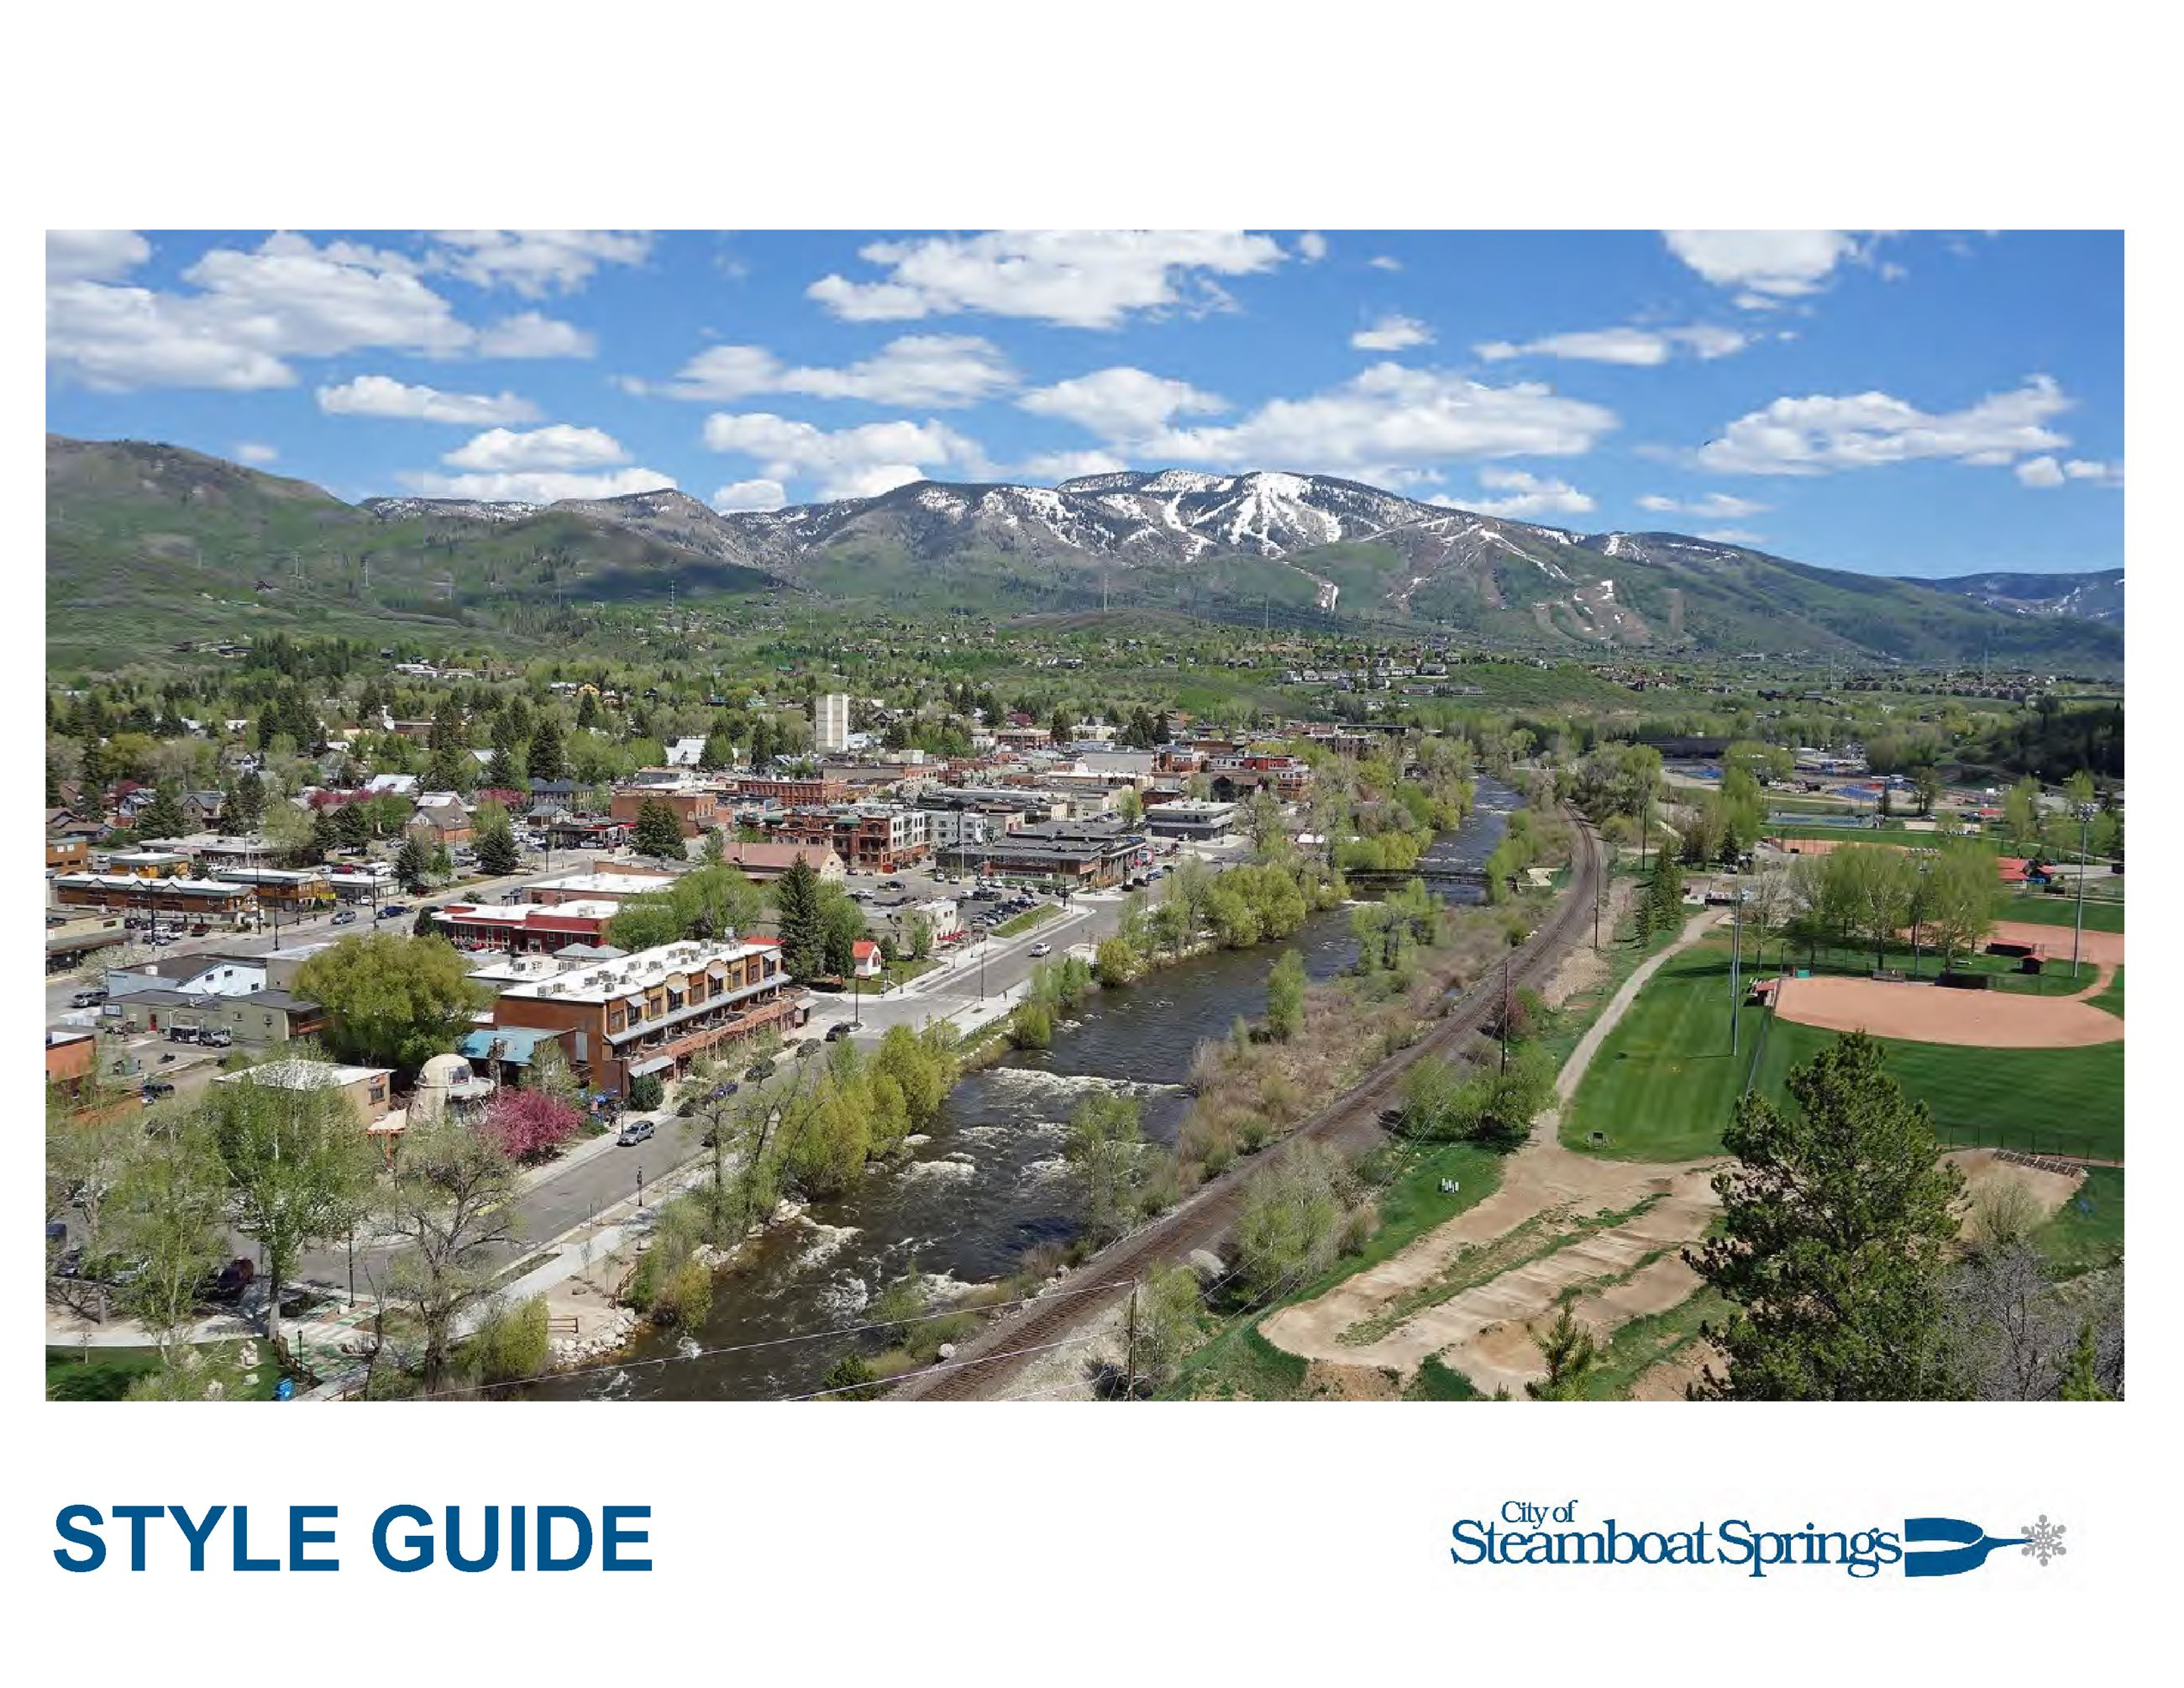 City of Steamboat Springs Brand Guide Binder 2-1 Opens in new window